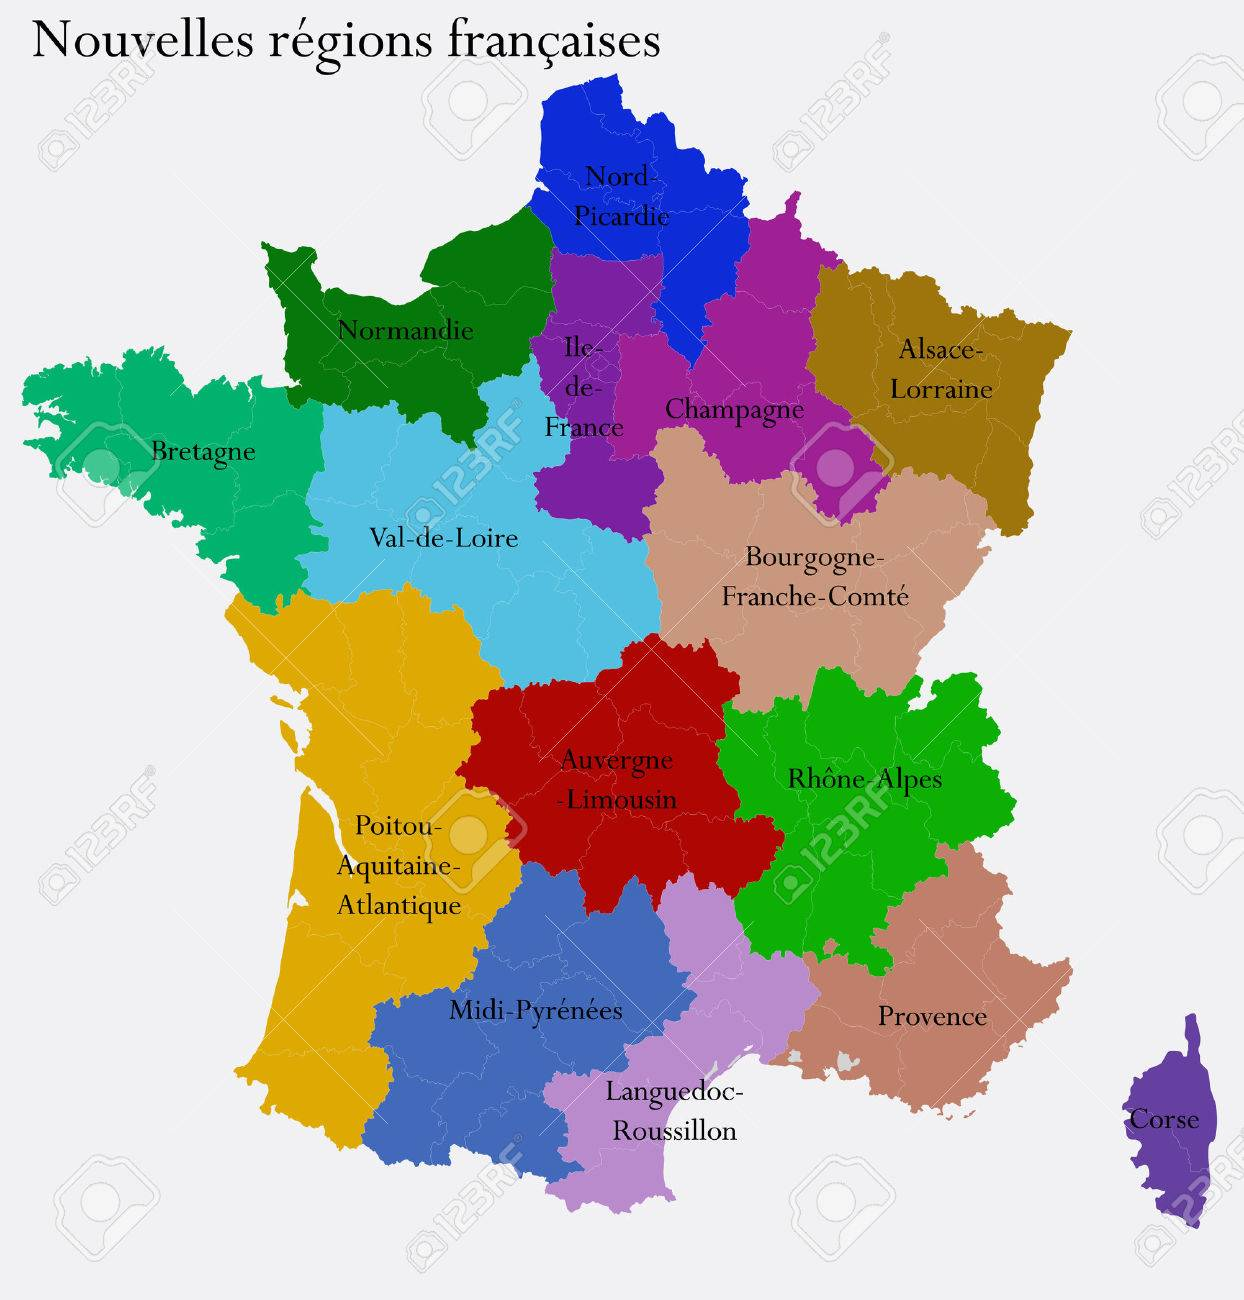 New french regions nouvelles regions de france separated departments new french regions nouvelles regions de france separated departments stock photo 26861762 gumiabroncs Images